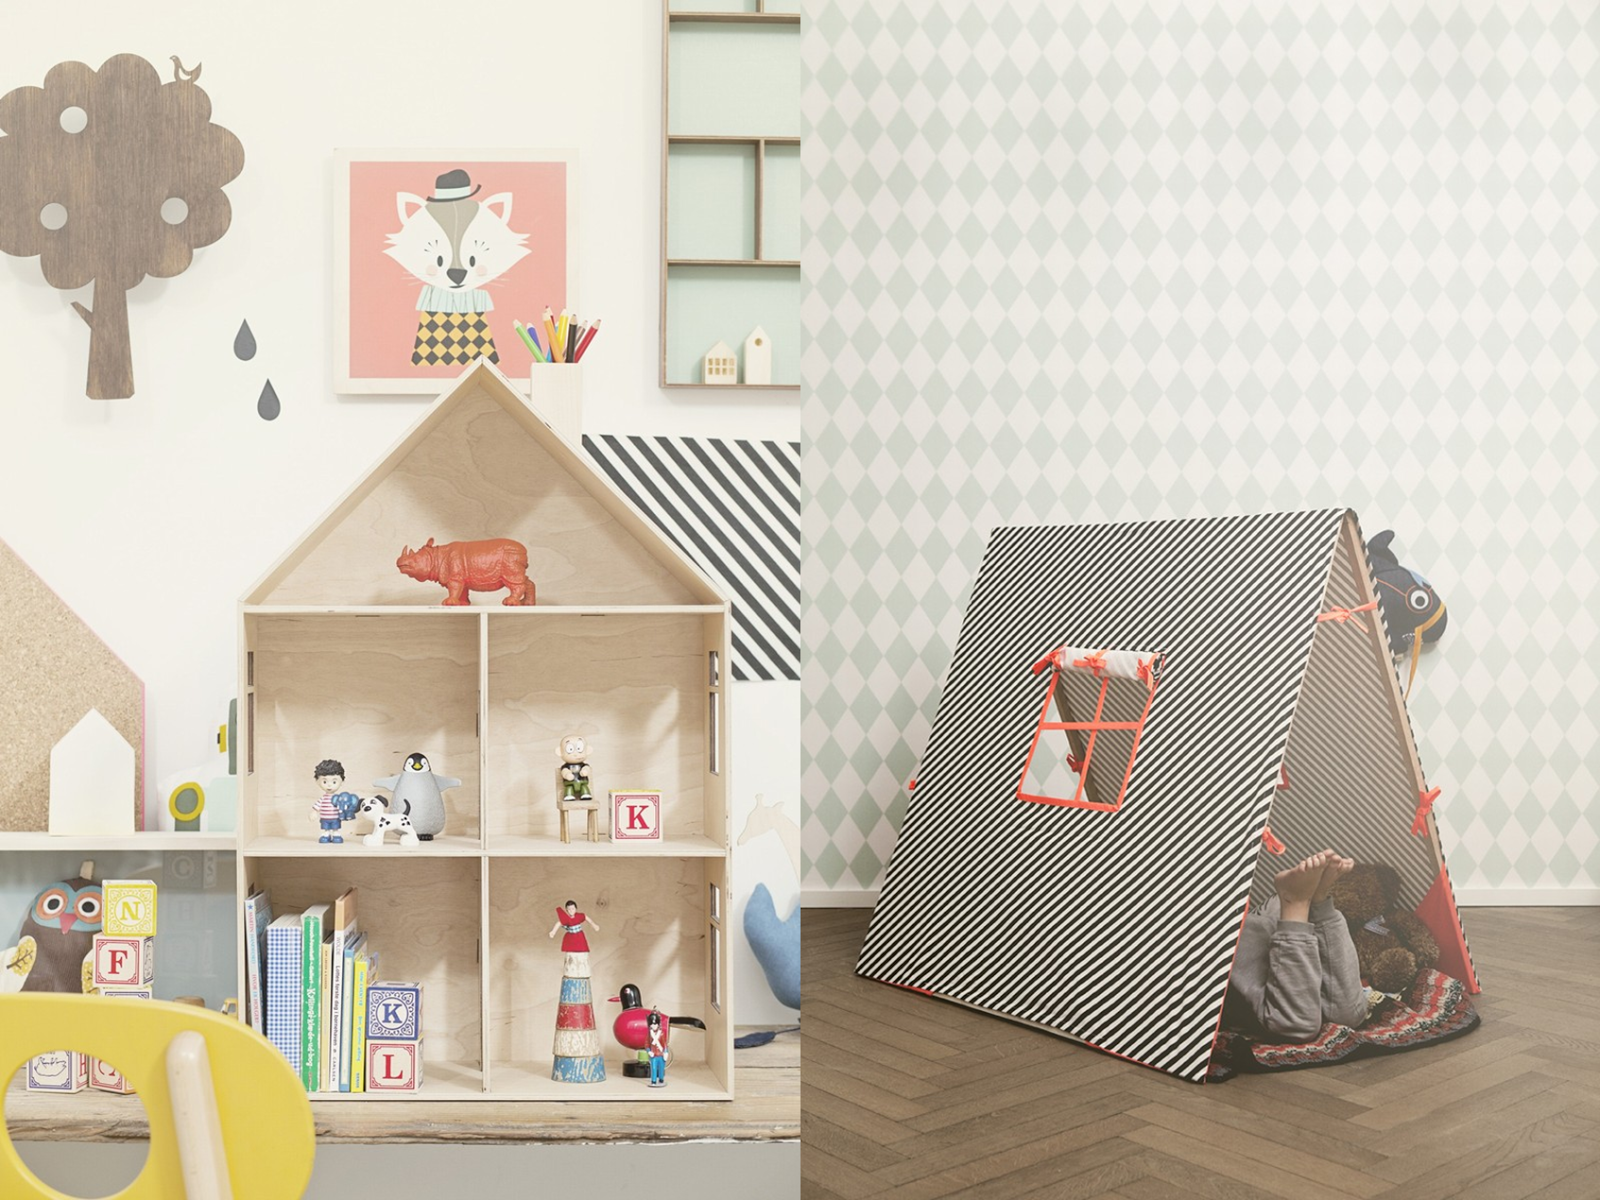 kids ferm living ss13 2 sara sj fn grettisd ttir. Black Bedroom Furniture Sets. Home Design Ideas